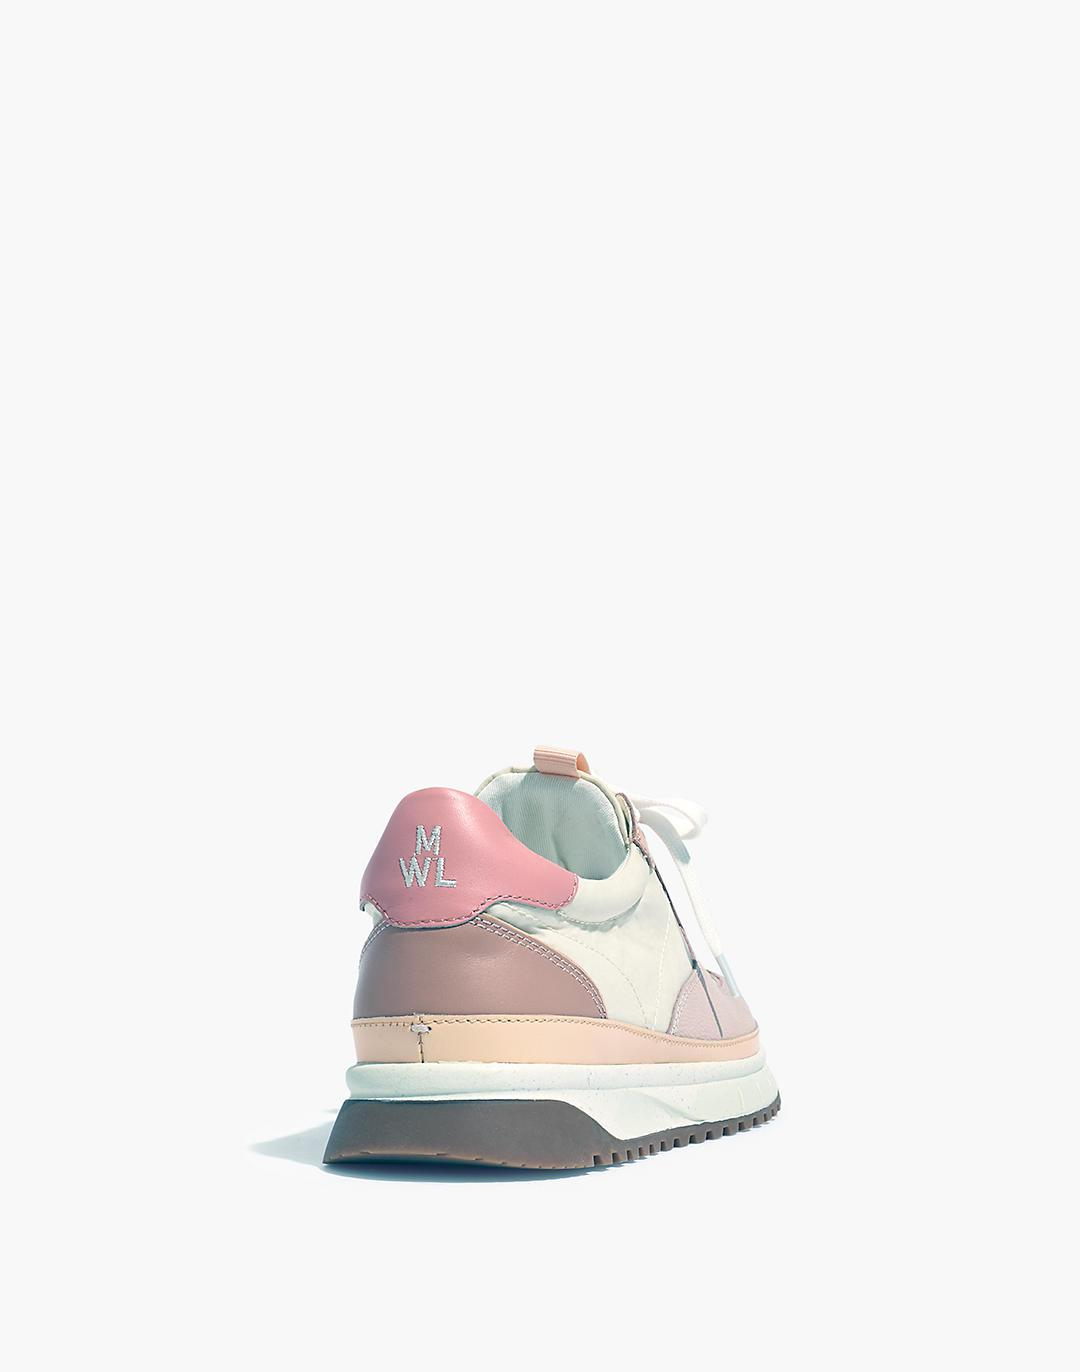 Kickoff Trainer Sneakers in Washed Nylon and Leather 2